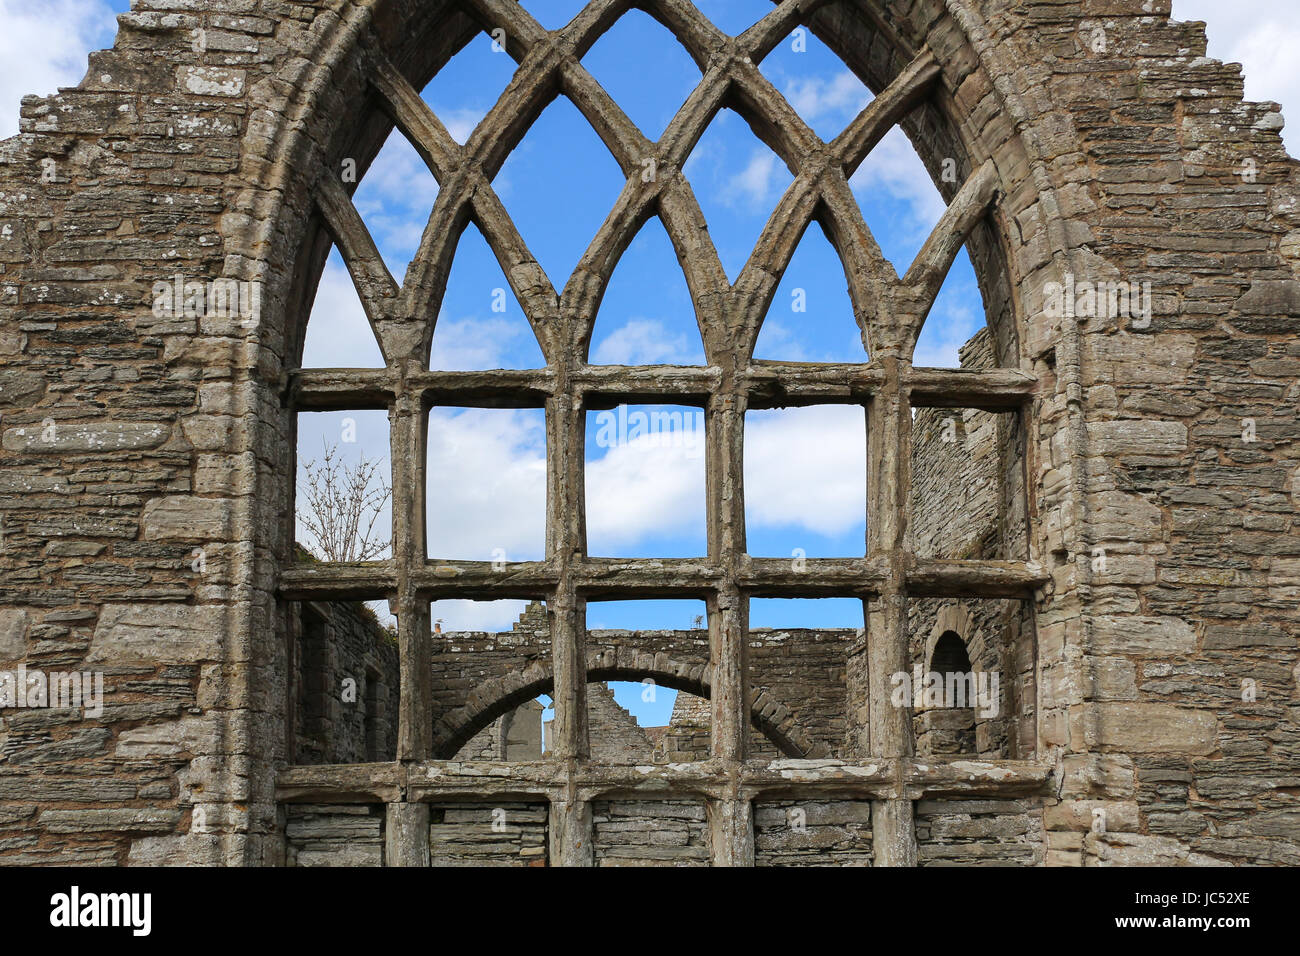 The five lighted south traceried window of Old St. Peter's Kirk ruin in Thurso, Scotland. The 12th Century church - Stock Image